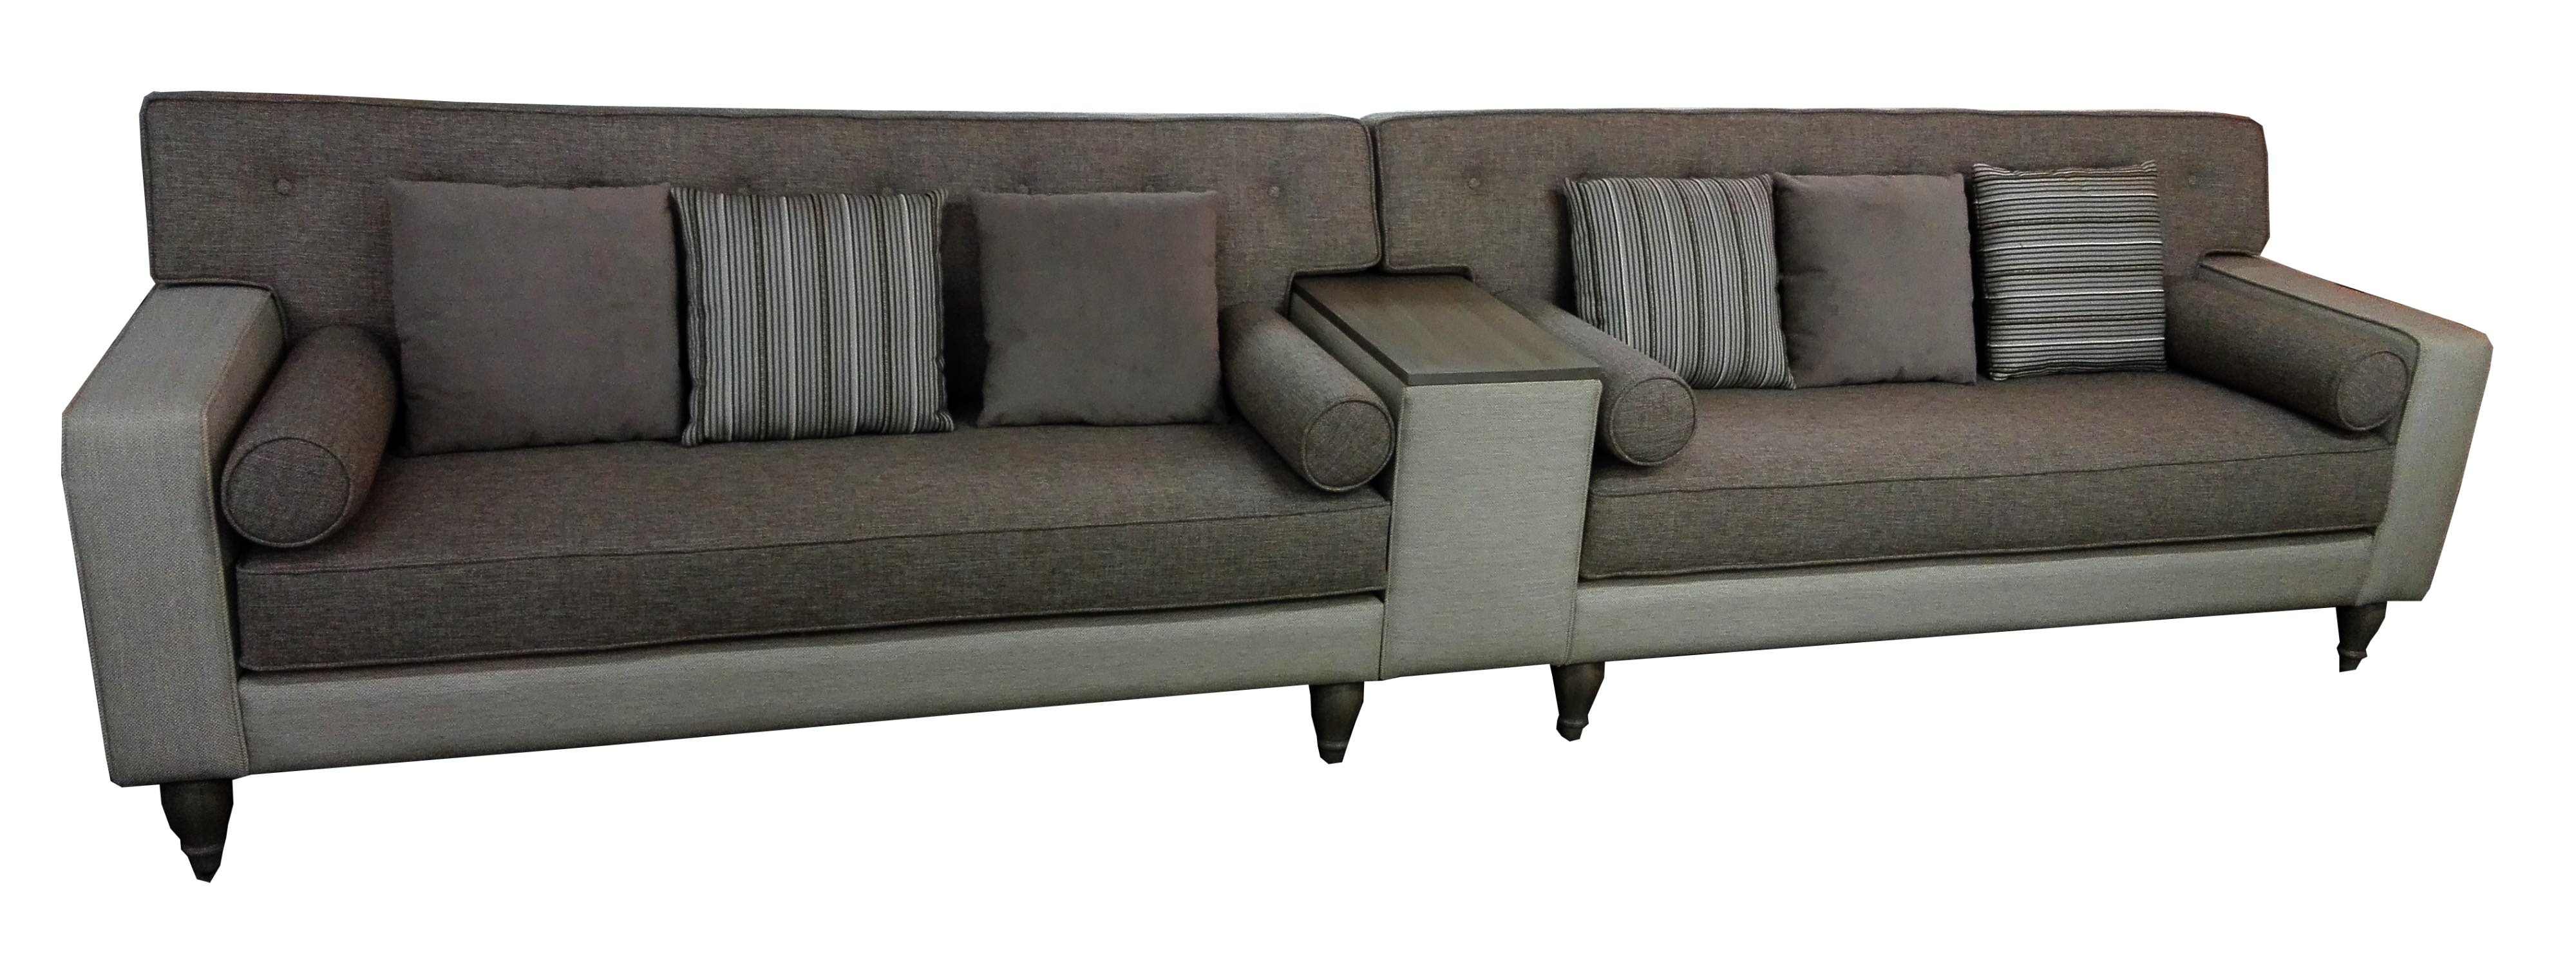 Sofa with wood armrest background white